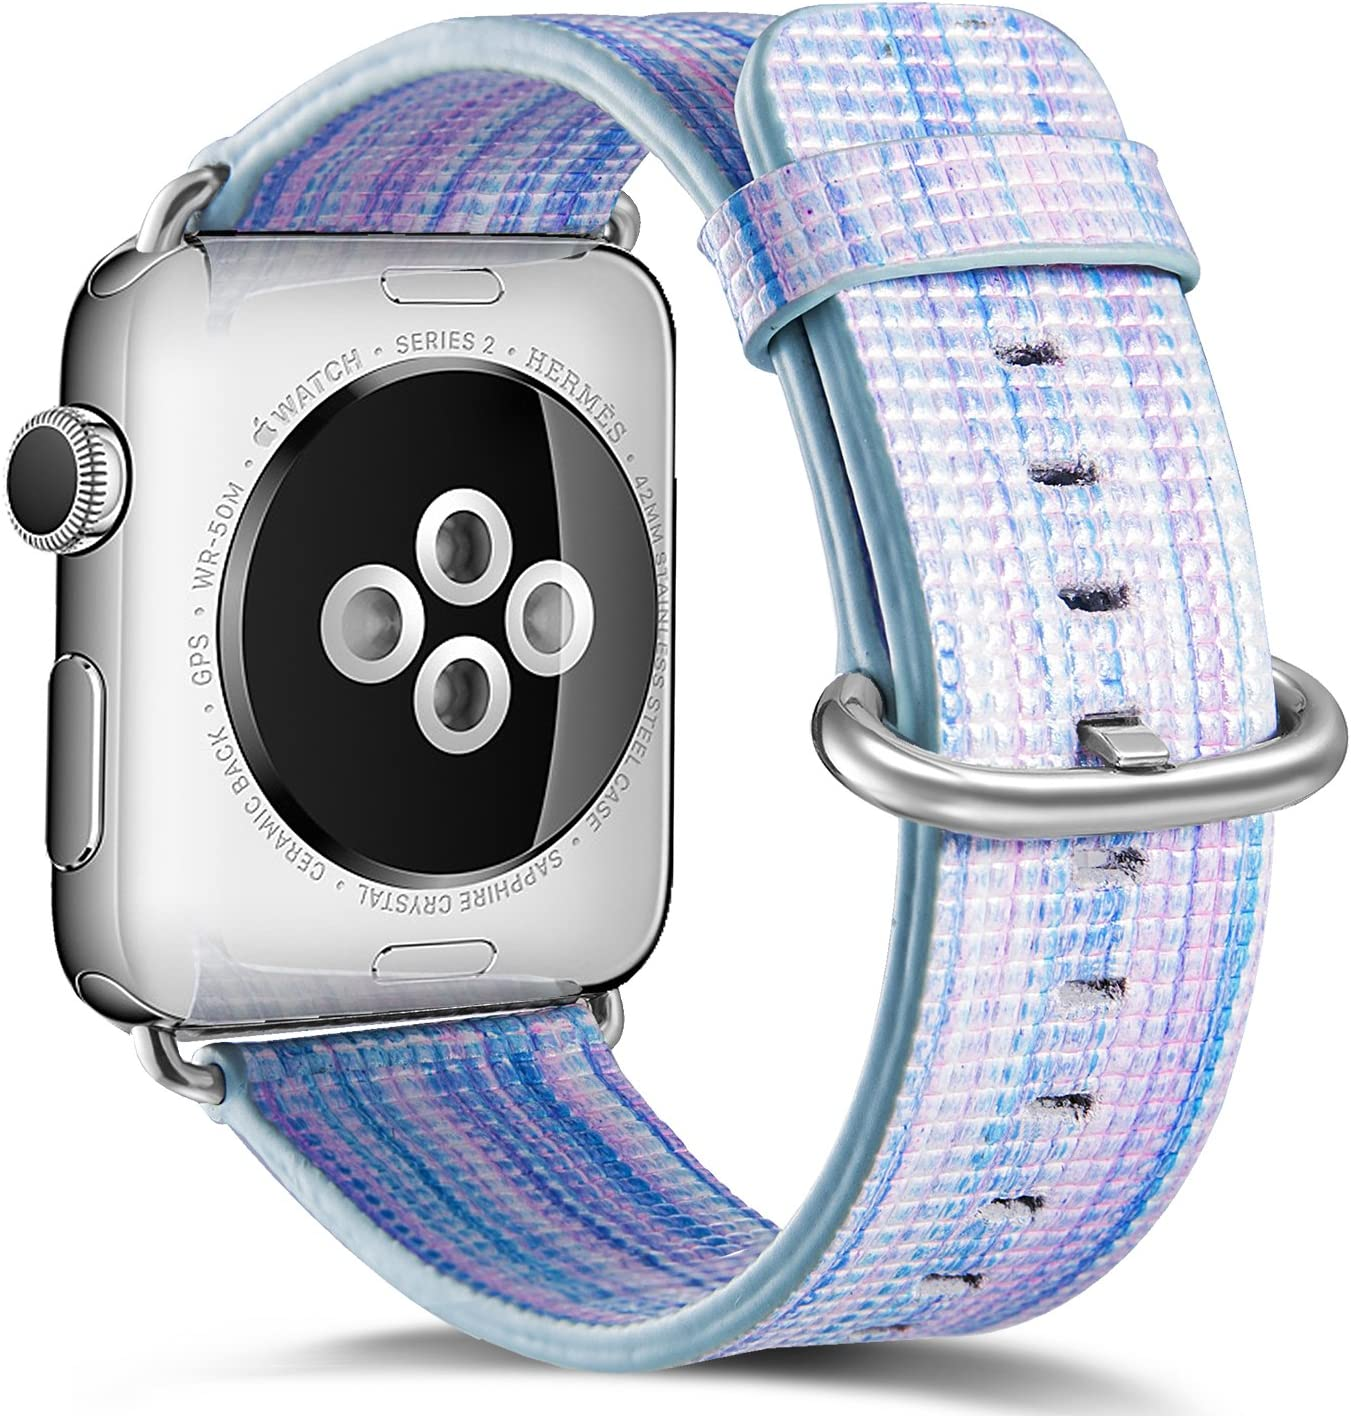 Compatible Apple Watch Band 38mm 40mm,Pierre Case Genuine Leather iwatch Strap Replacement Bands with Stainless Metal Clasp Compatible iWatch Series 6 & 5 & 4 &3 & 2 & 1 Edition Women Girl(Blue)